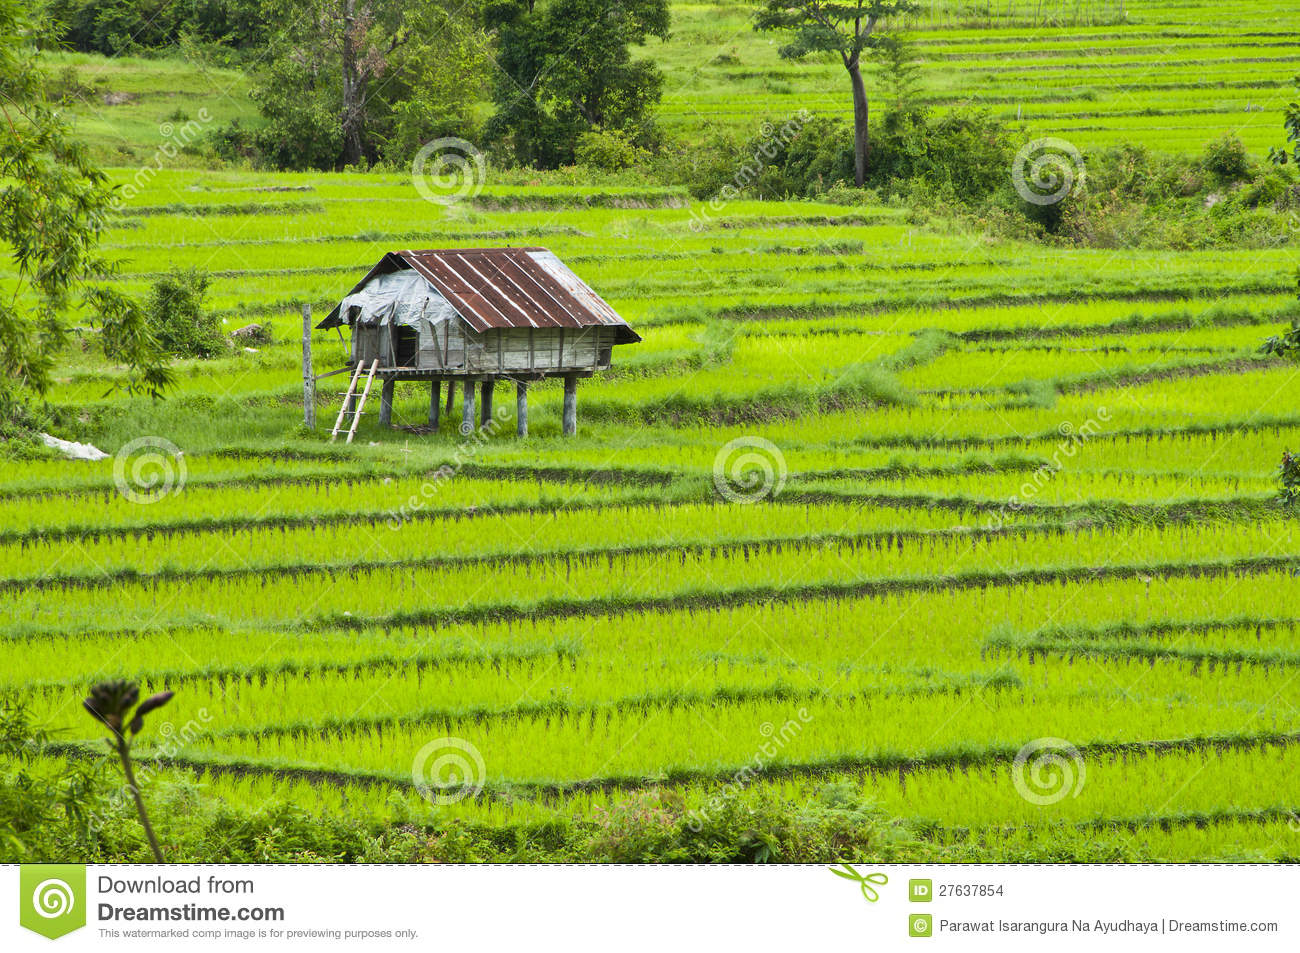 terrace rice fields in thailand stock images image farm animal clipart for kids farm animals clipart chart